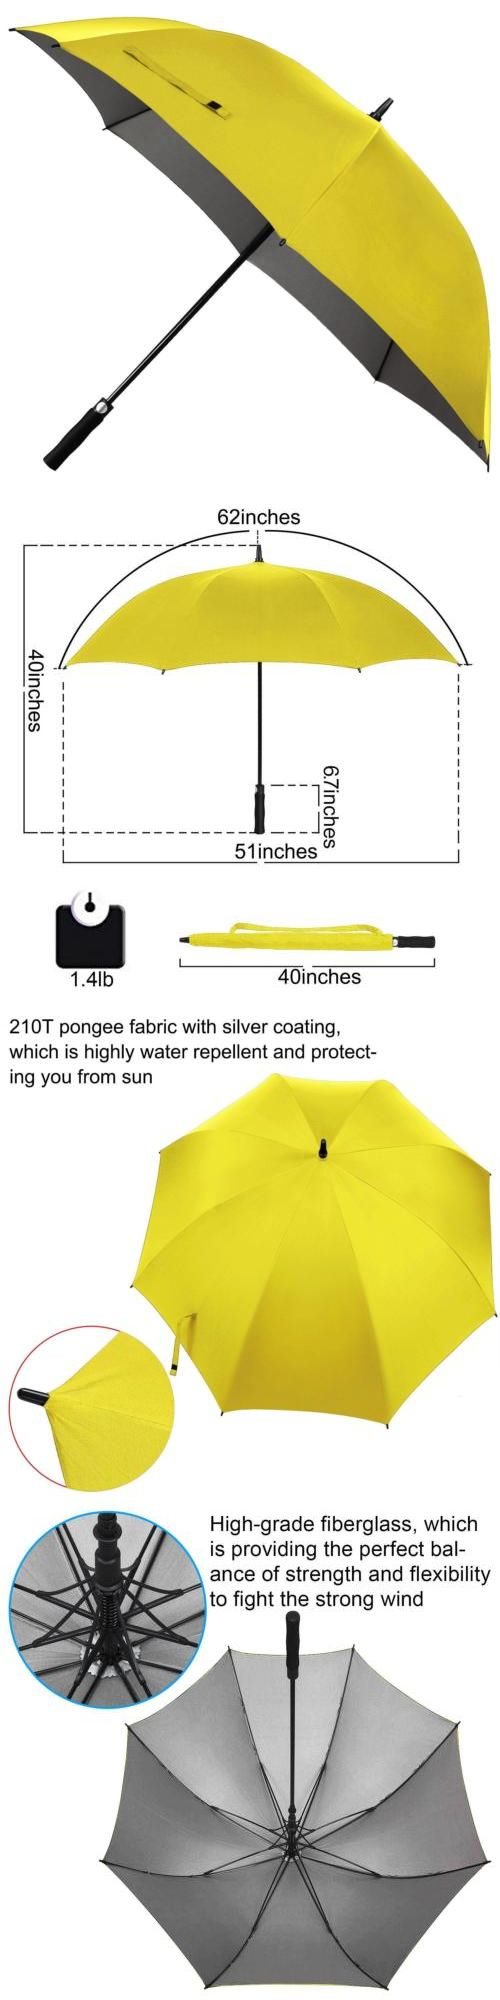 Golf Umbrellas 18933: Rainlax Windproof Golf Umbrella 62 Inch Oversize Canopy Automatic Open Large... -> BUY IT NOW ONLY: $34.86 on eBay!